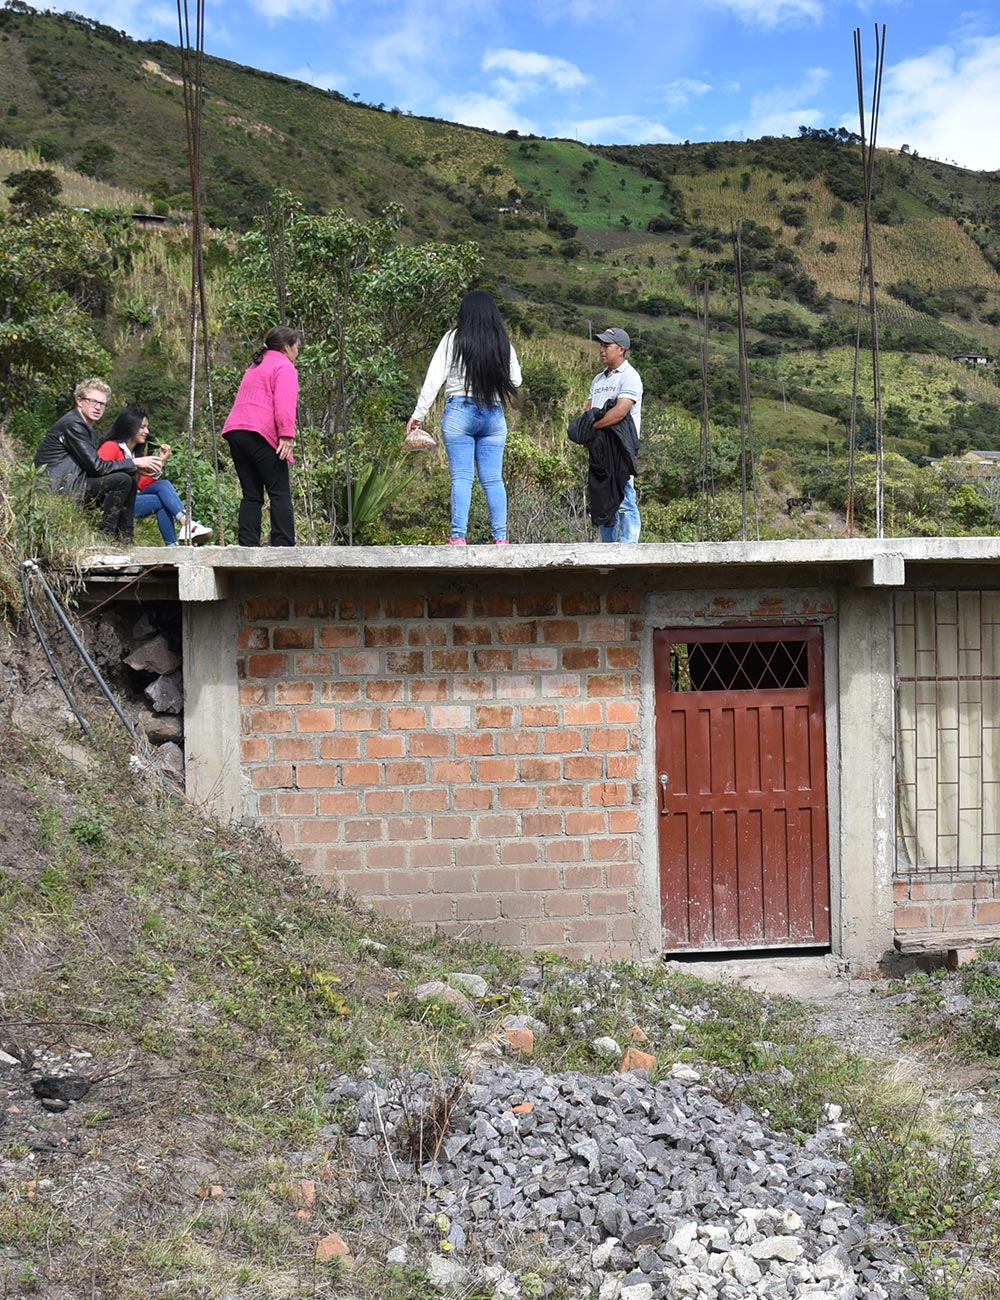 Housing Restoration - Resguardo Inga De Aponte, Narino, Colombia, 55 Beneficiary families, 62,150 lbs of cement + 68,850 bricks + 890 steel rods + 437 sheets of roofing + 5 complete bathrooms + other assorted materials